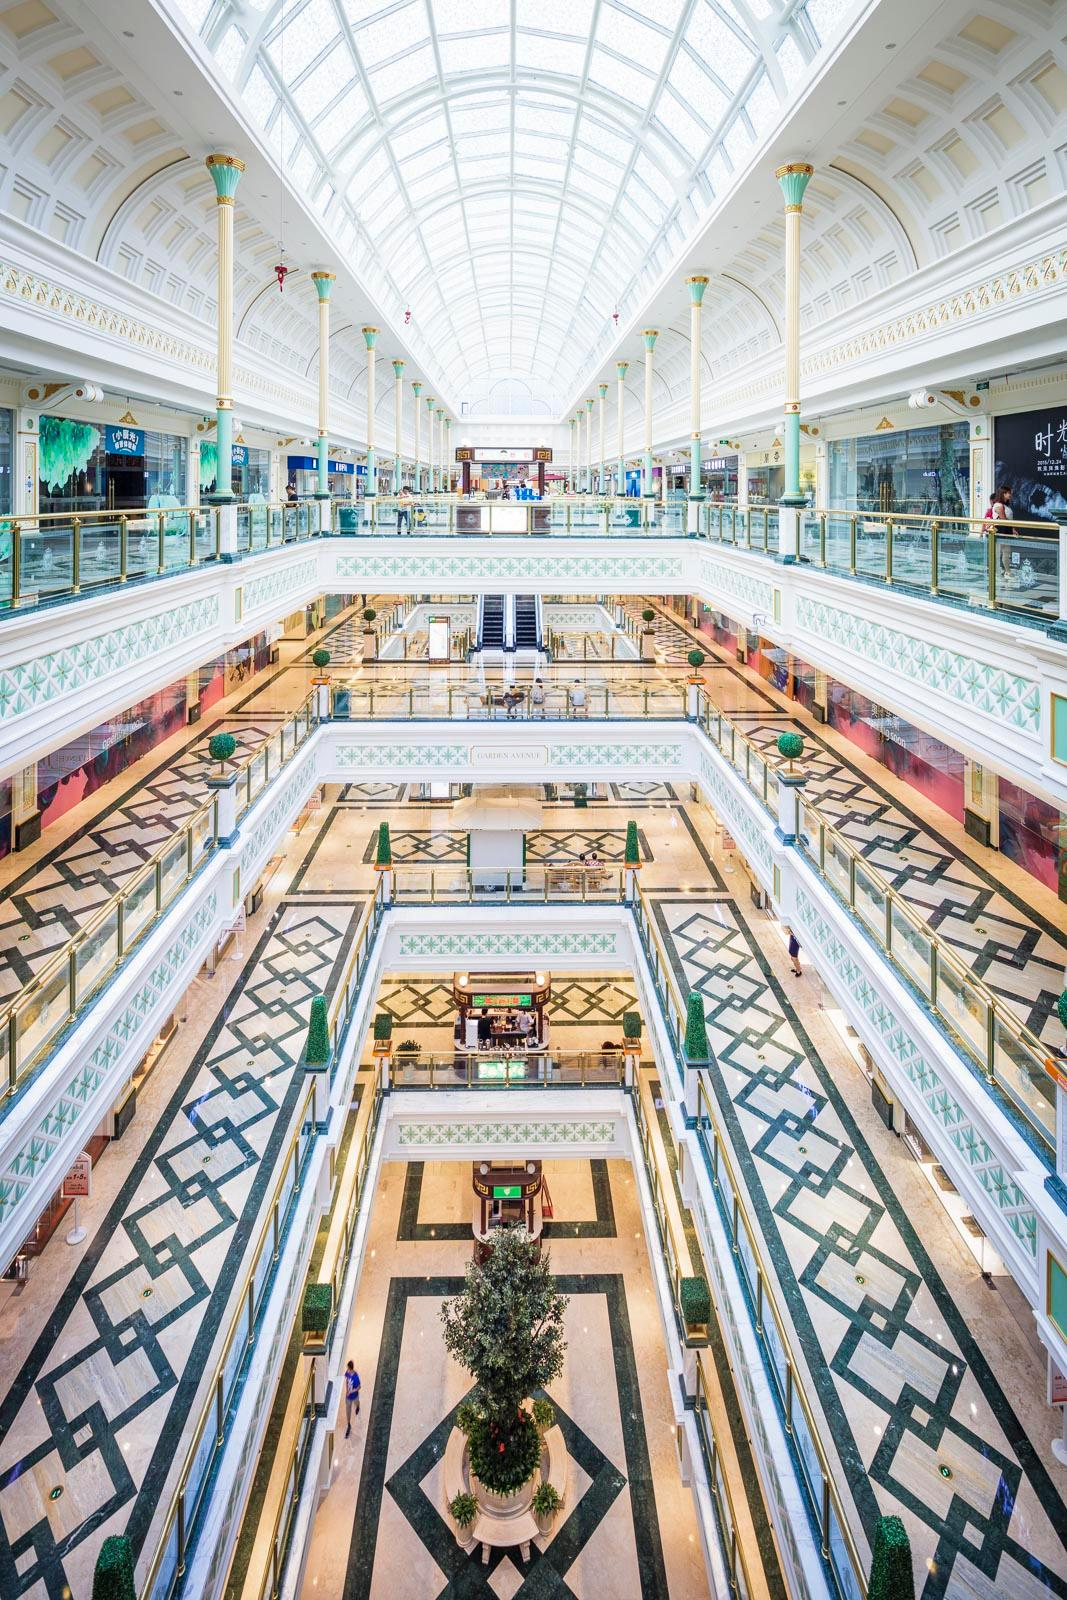 A 60,000sq m (645,800sq ft) of space dedicated to bars, restaurants and cafés / Chapman Taylor